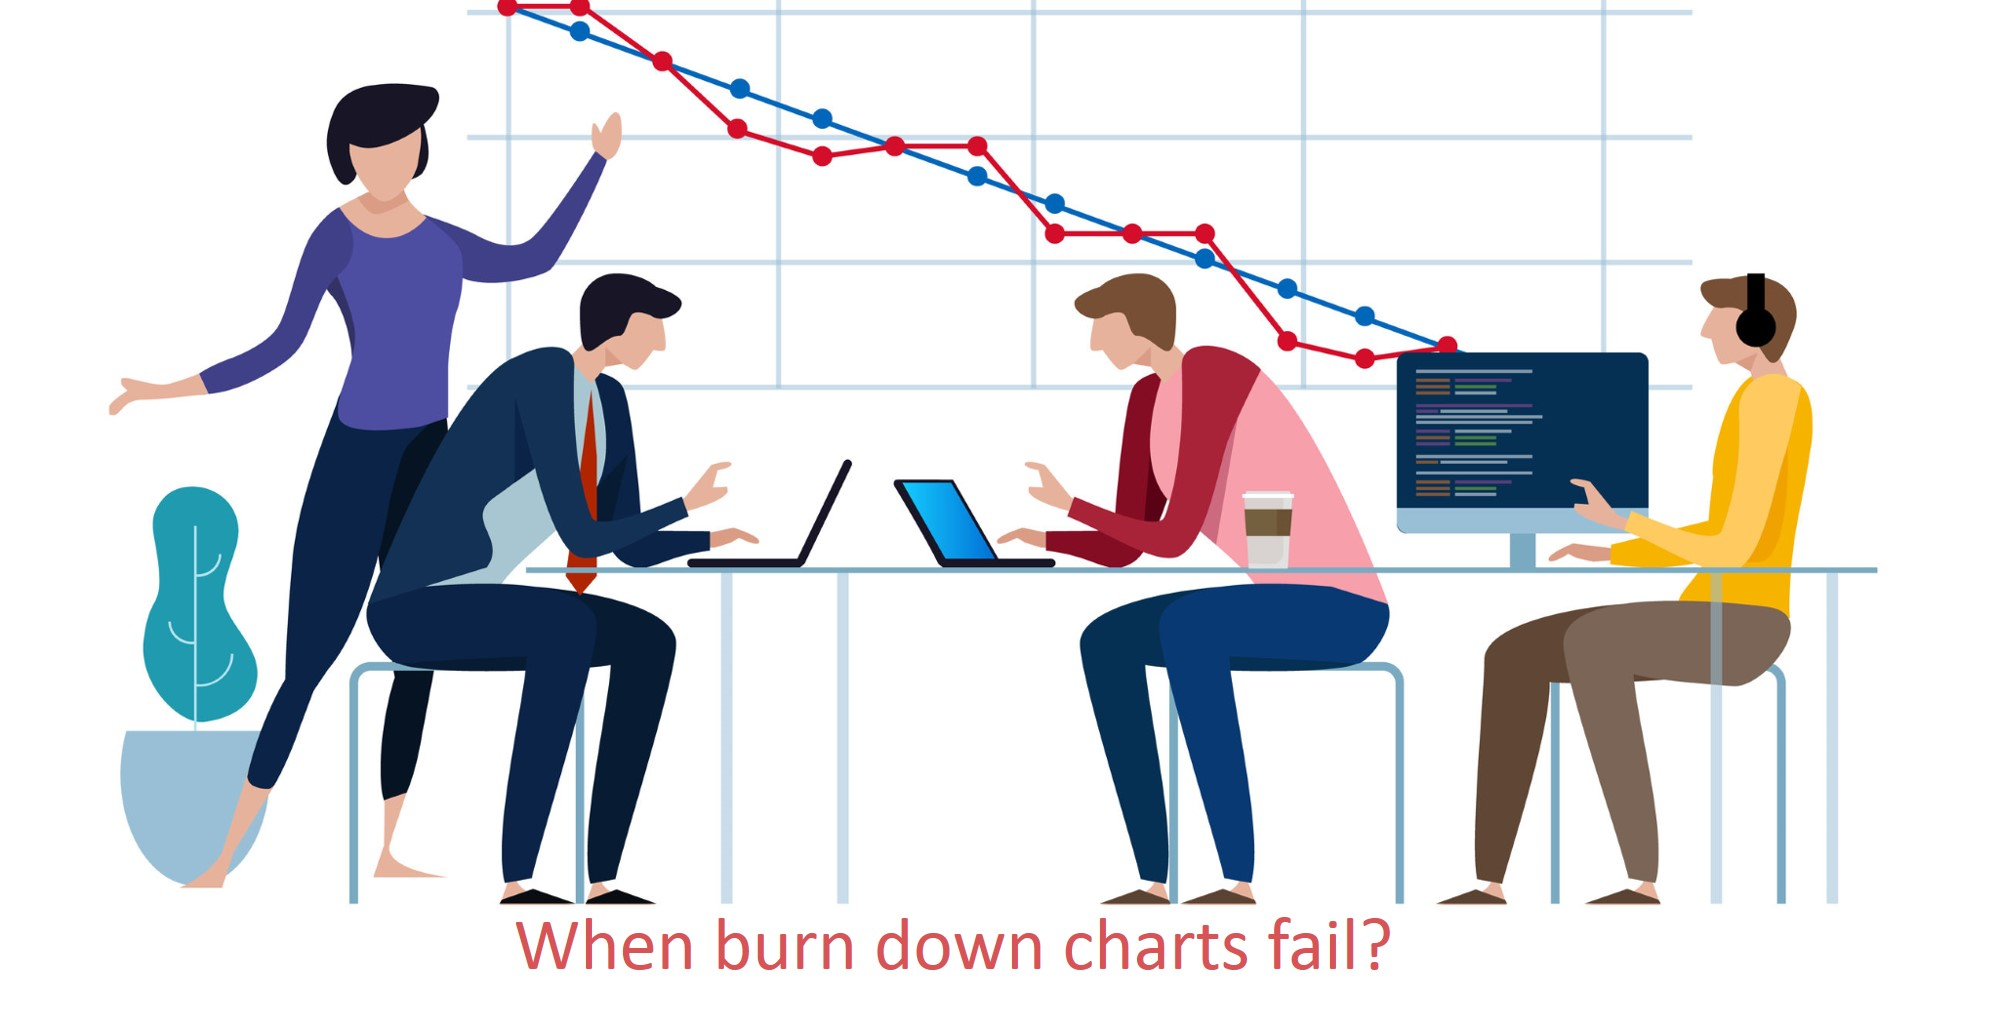 When burn down charts fail?